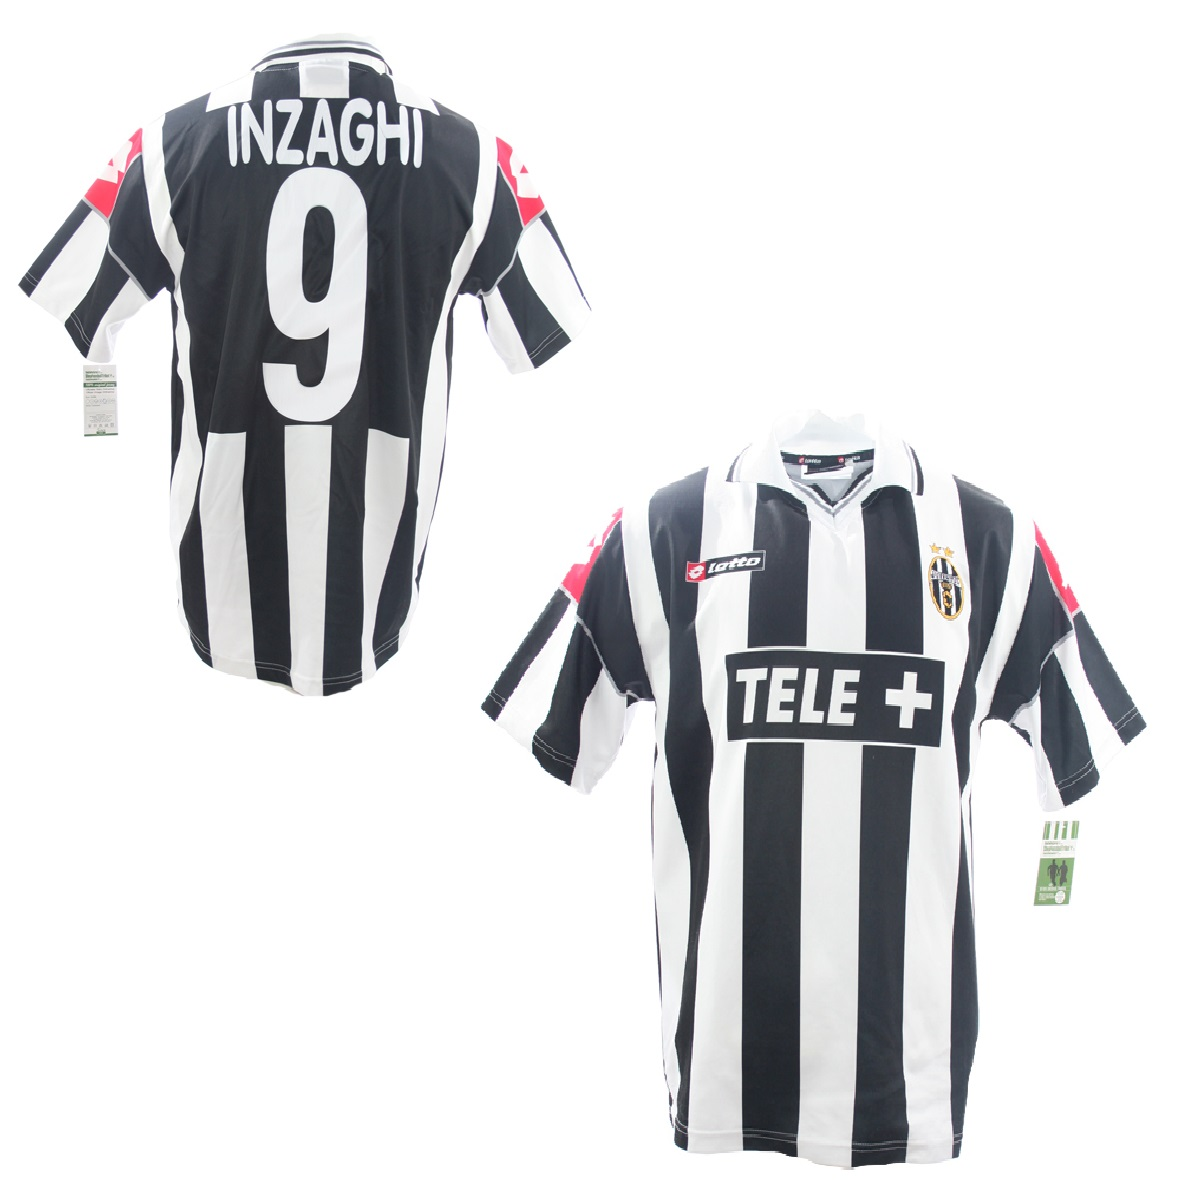 new product 0acb9 f1db8 Lotto Juventus Turin jersey 9 Filippo Inzaghi 2000/01 Tele ...